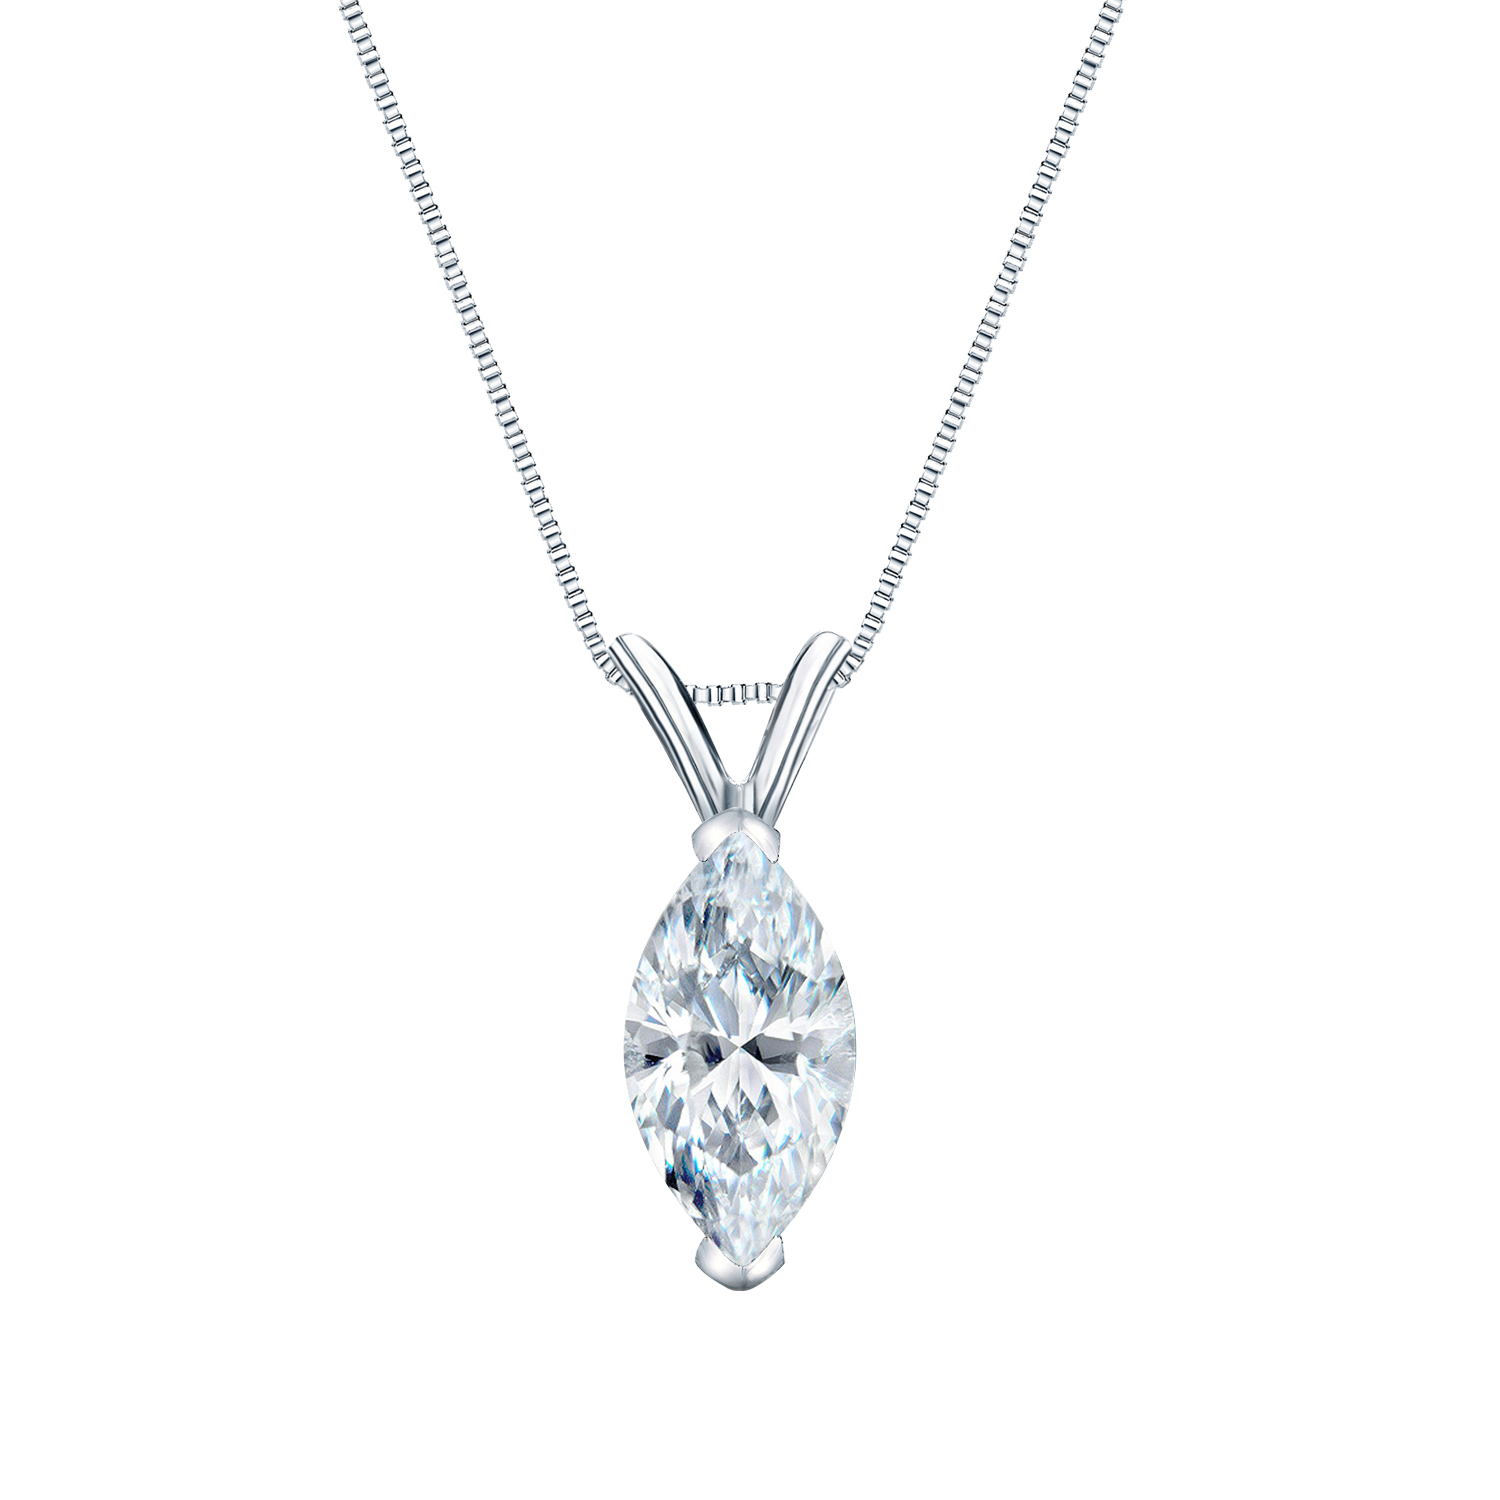 Certified 0.25 ct. tw. Marquise Diamond Solitaire Pendant in 14k White Gold V-End Prong (G-H, SI)